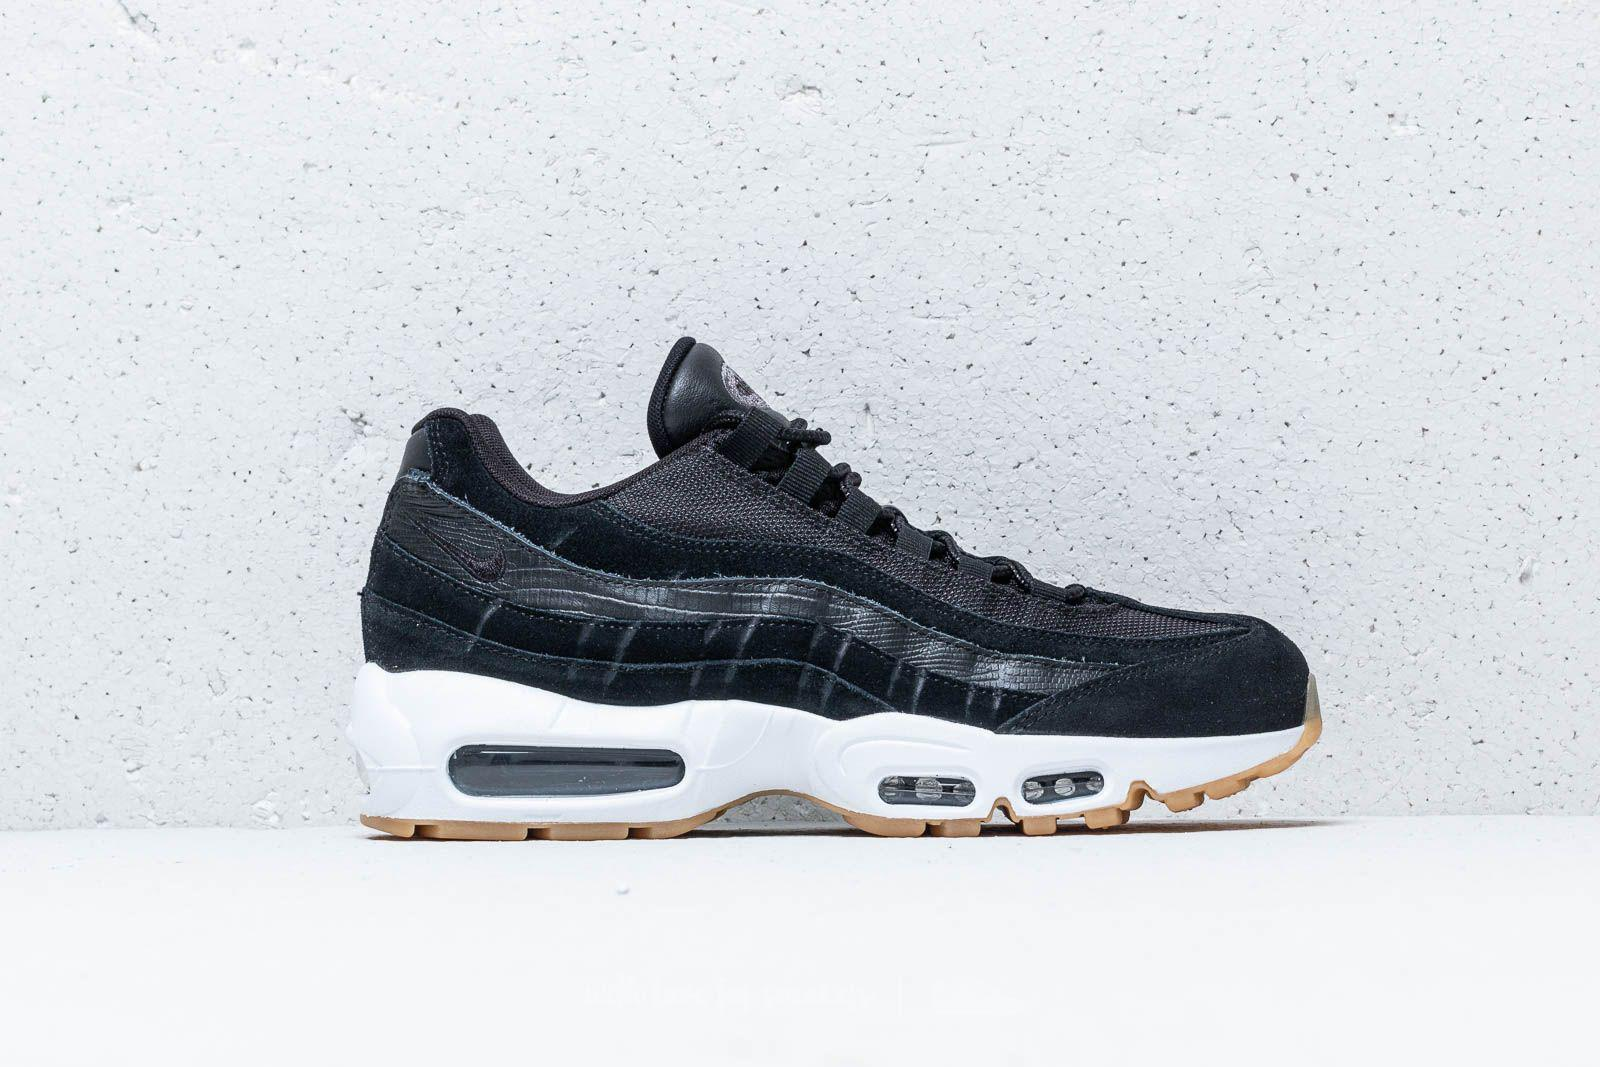 Nike - Air Max 95 Premium Black  Black-dark Grey-white for Men. View  fullscreen ad0e5e5bb8f0